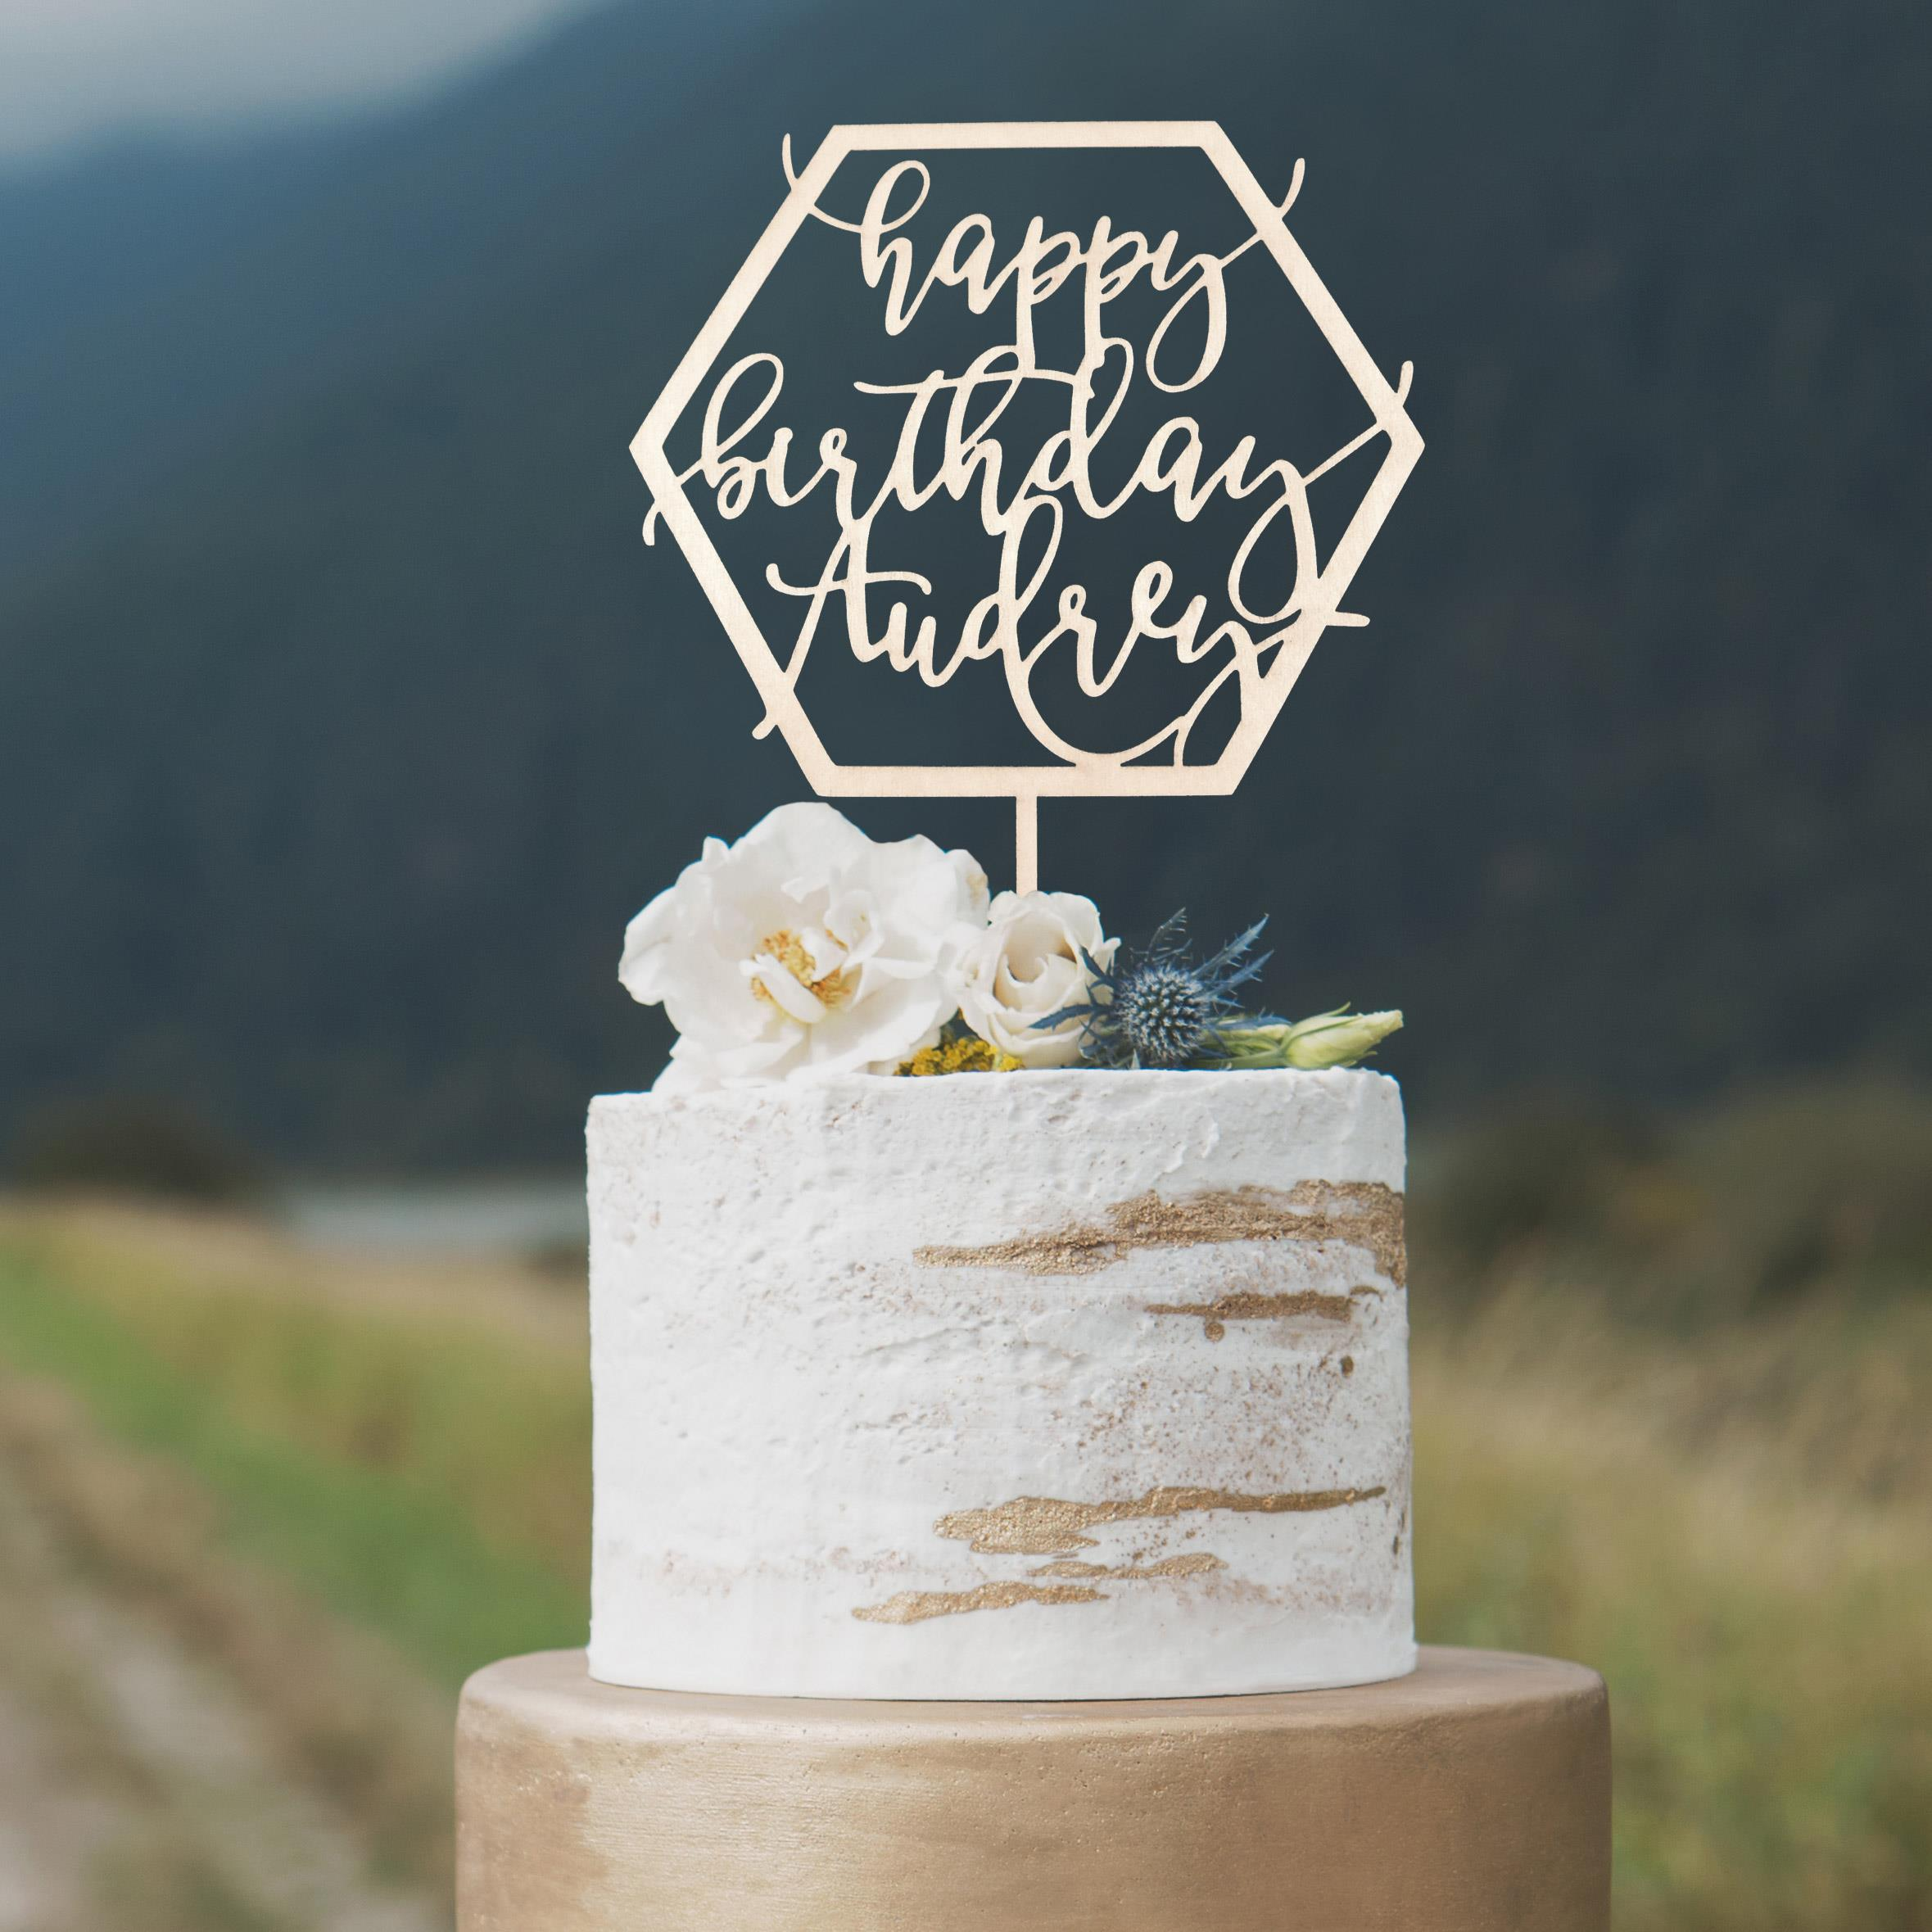 Custom Happy Birthday Cake Topper by Thistle and Lace